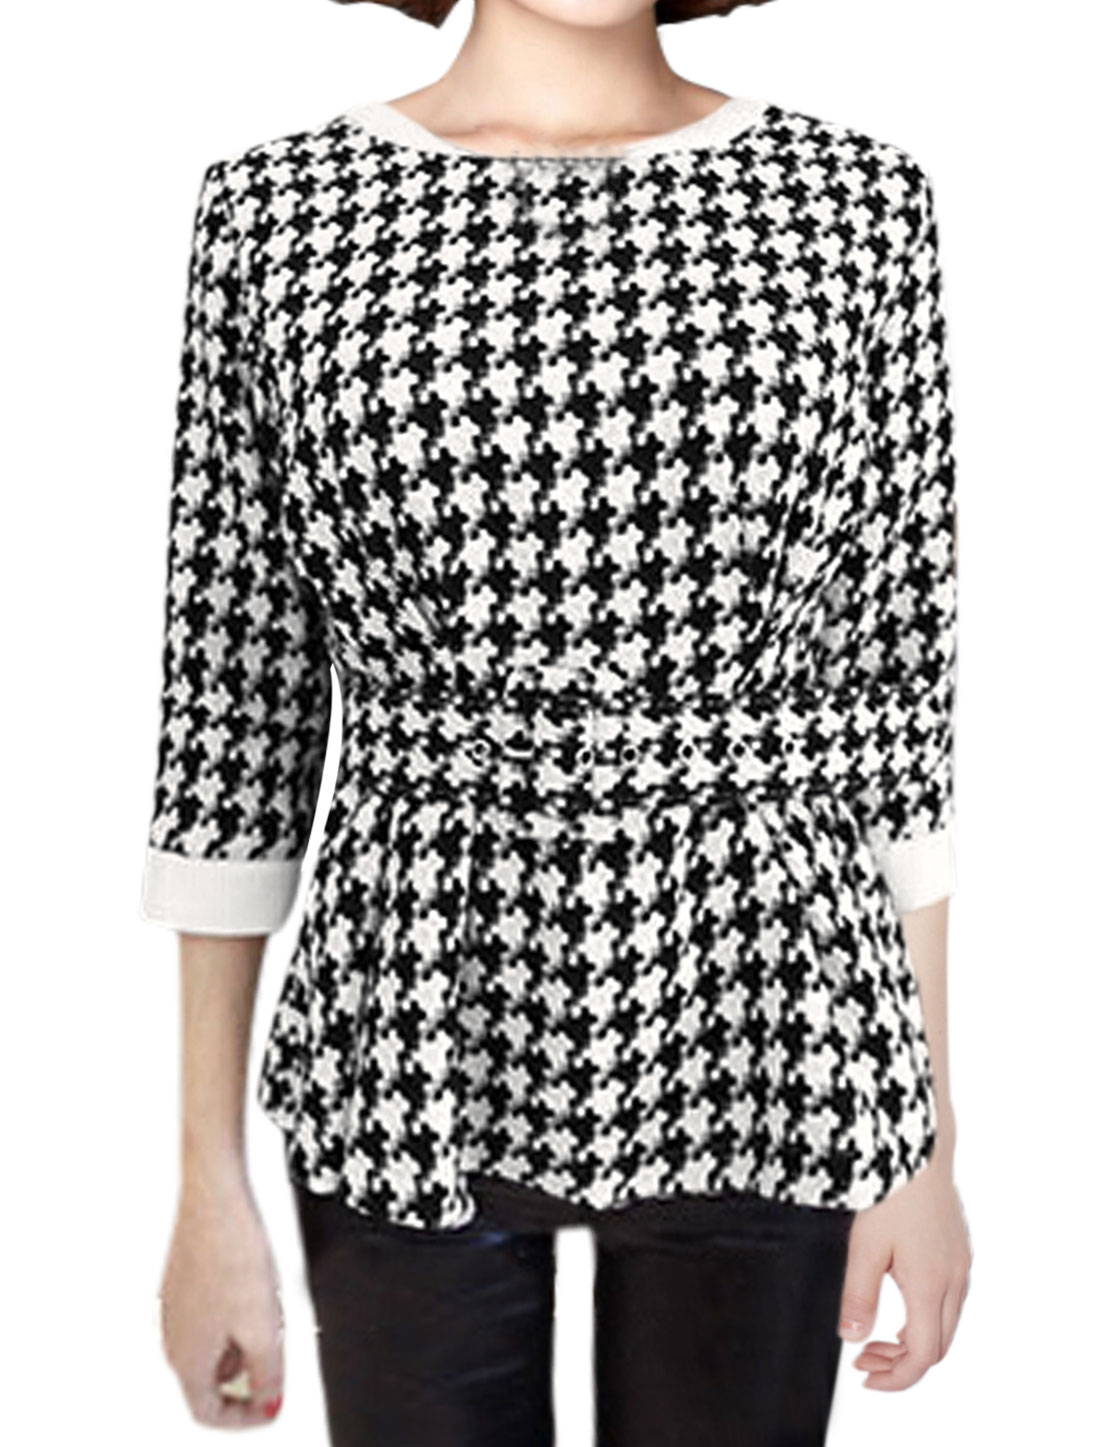 Women Houndstooth Pattern Slipover Peplum Top w Belt Black White XS